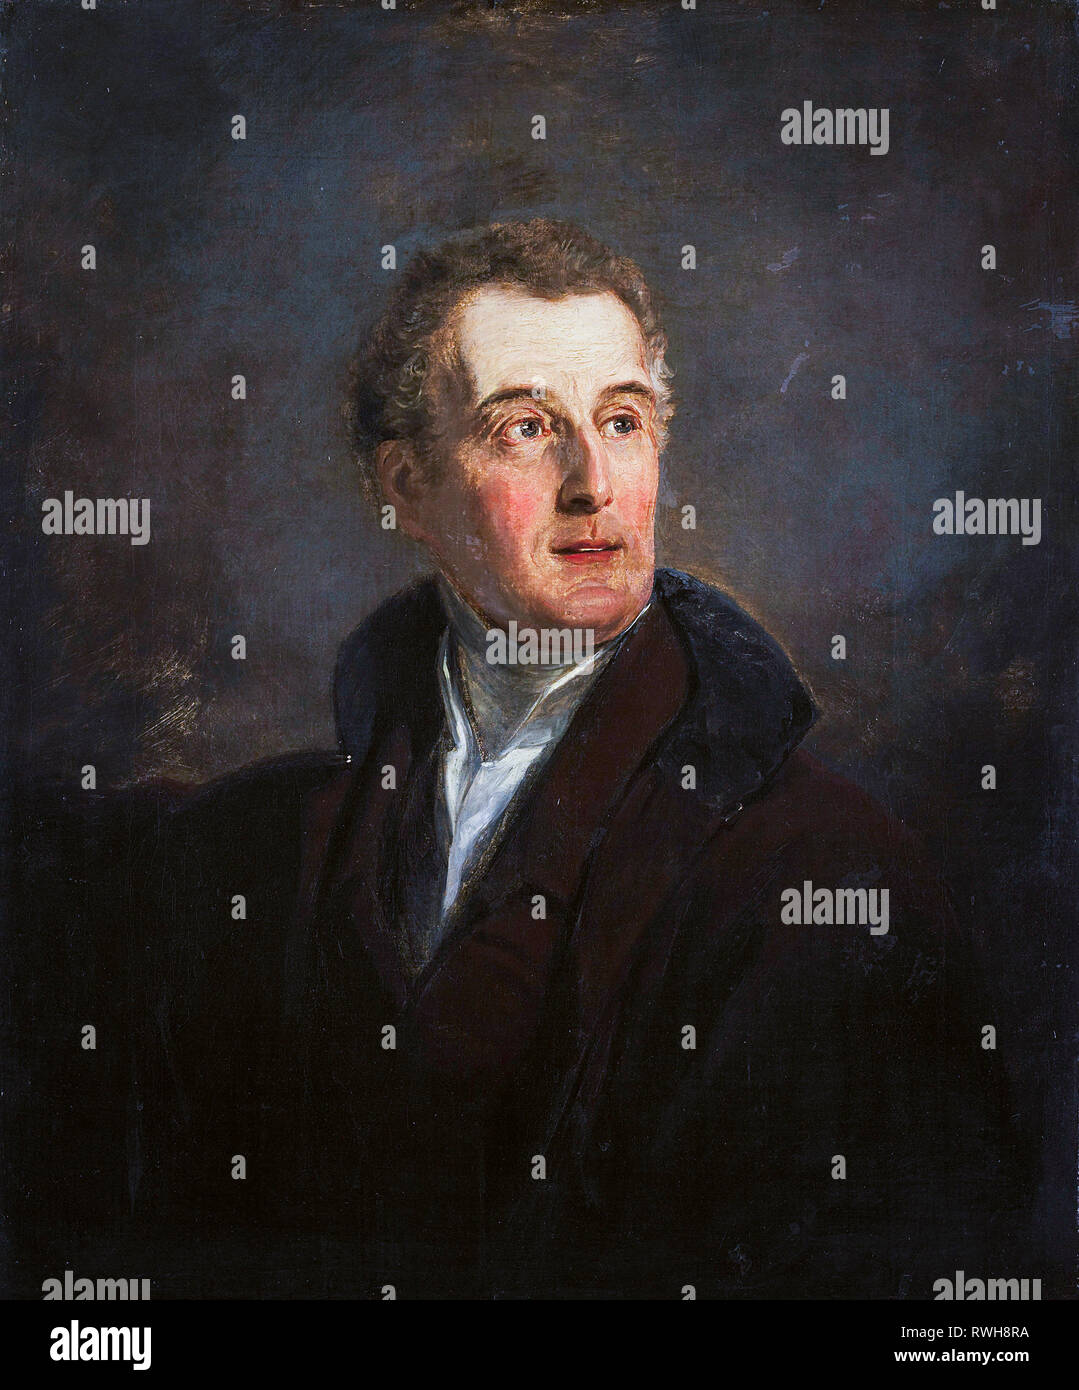 Arthur Wellesley, Duke of Wellington (1769-1852), portrait painting, 1821, by Jan Willem Pieneman - Stock Image